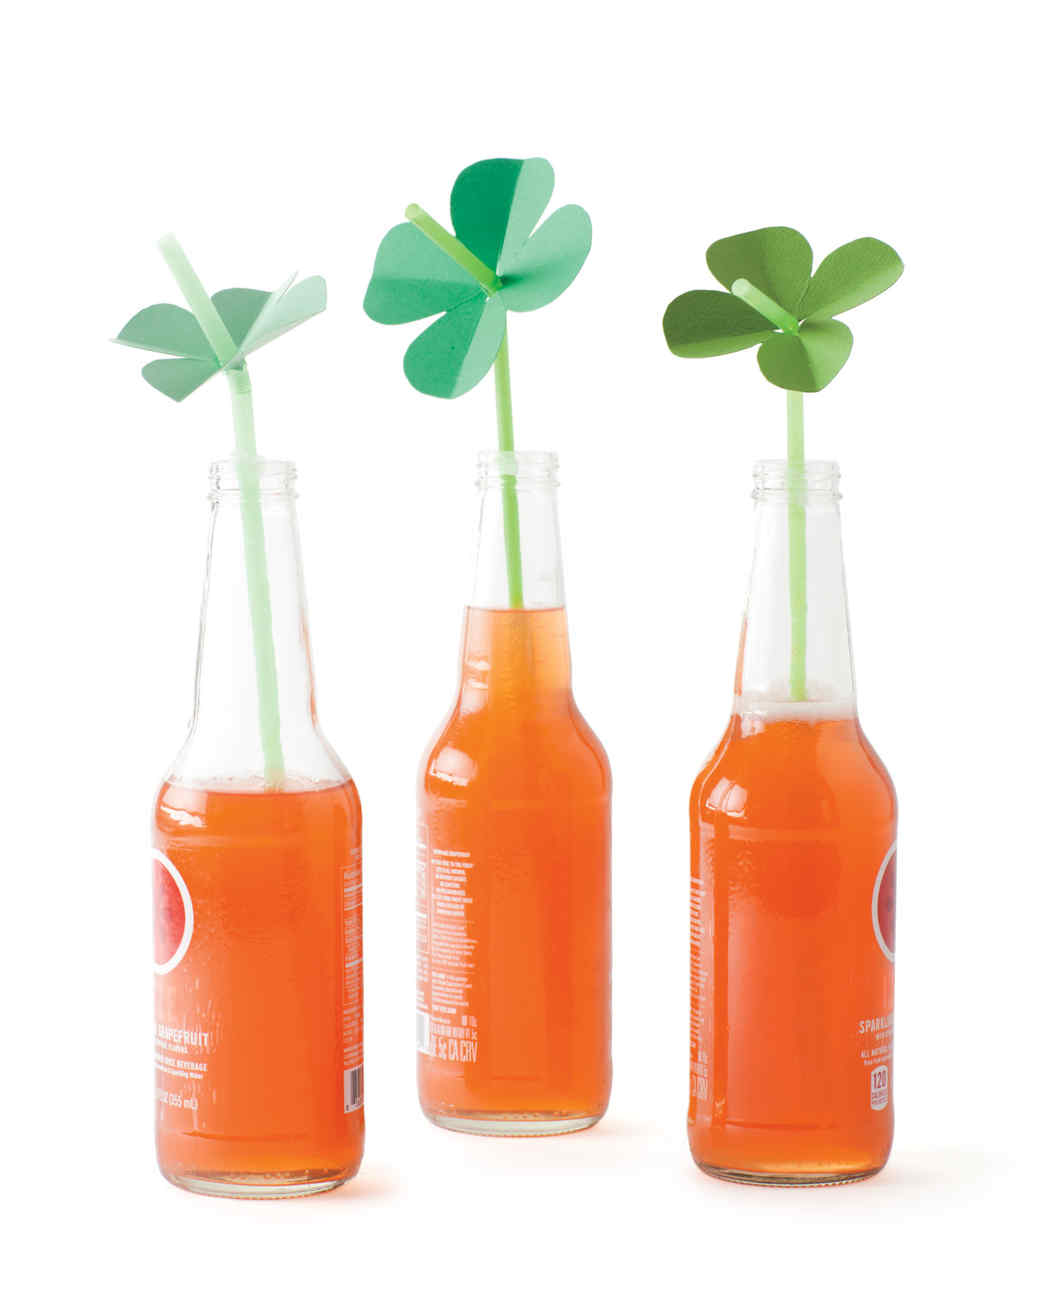 St pattys day crafts - Shamrock Straw Toppers